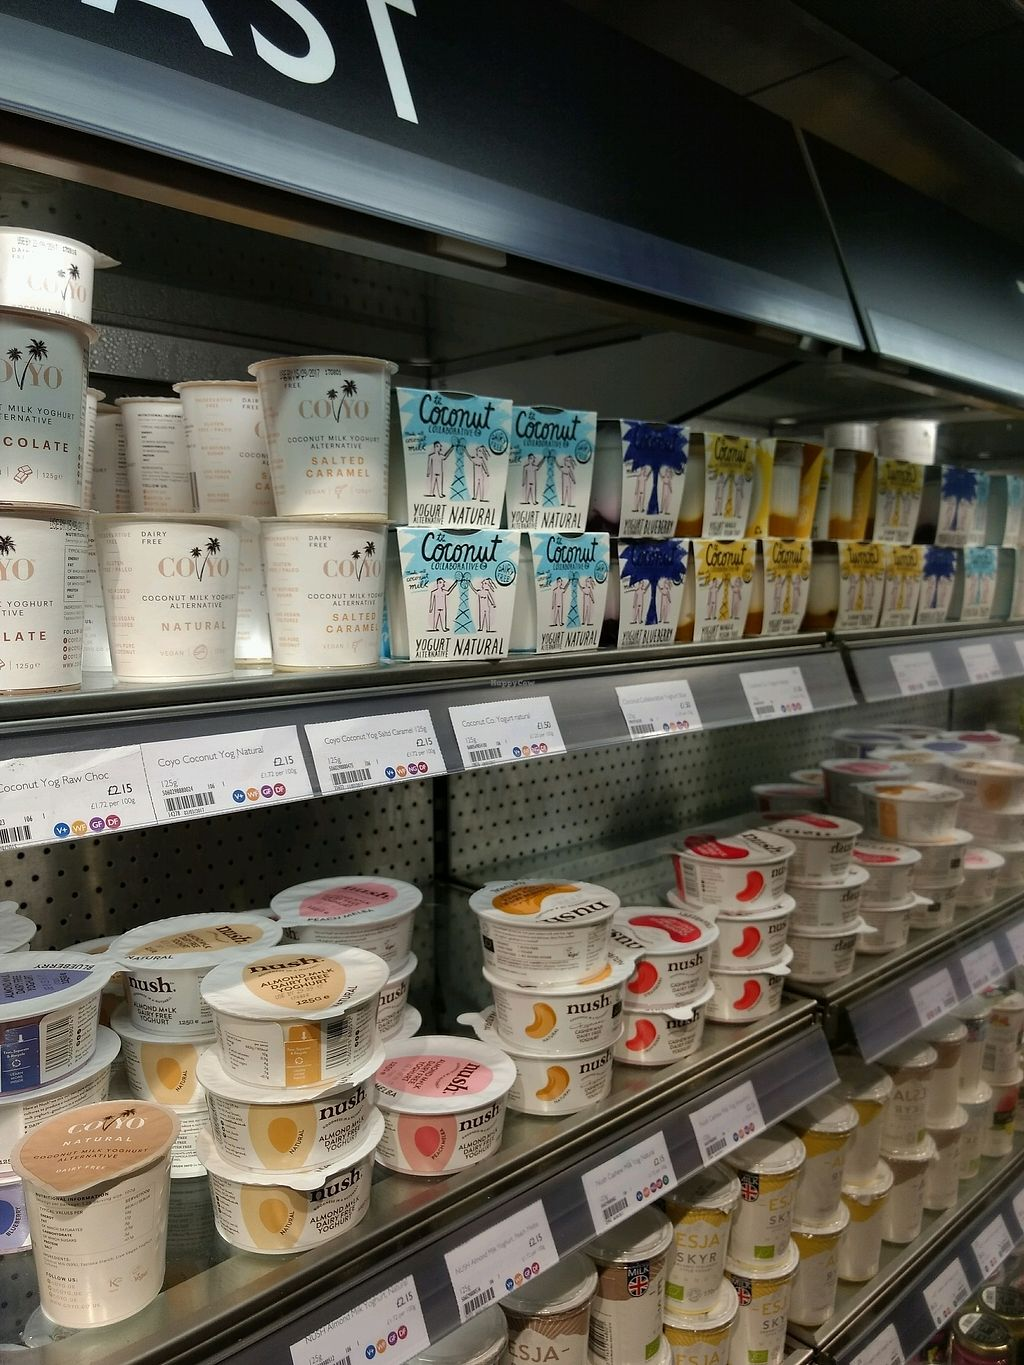 """Photo of Planet Organic - Torrington Place  by <a href=""""/members/profile/craigmc"""">craigmc</a> <br/>dairy free <br/> September 6, 2017  - <a href='/contact/abuse/image/3583/301406'>Report</a>"""